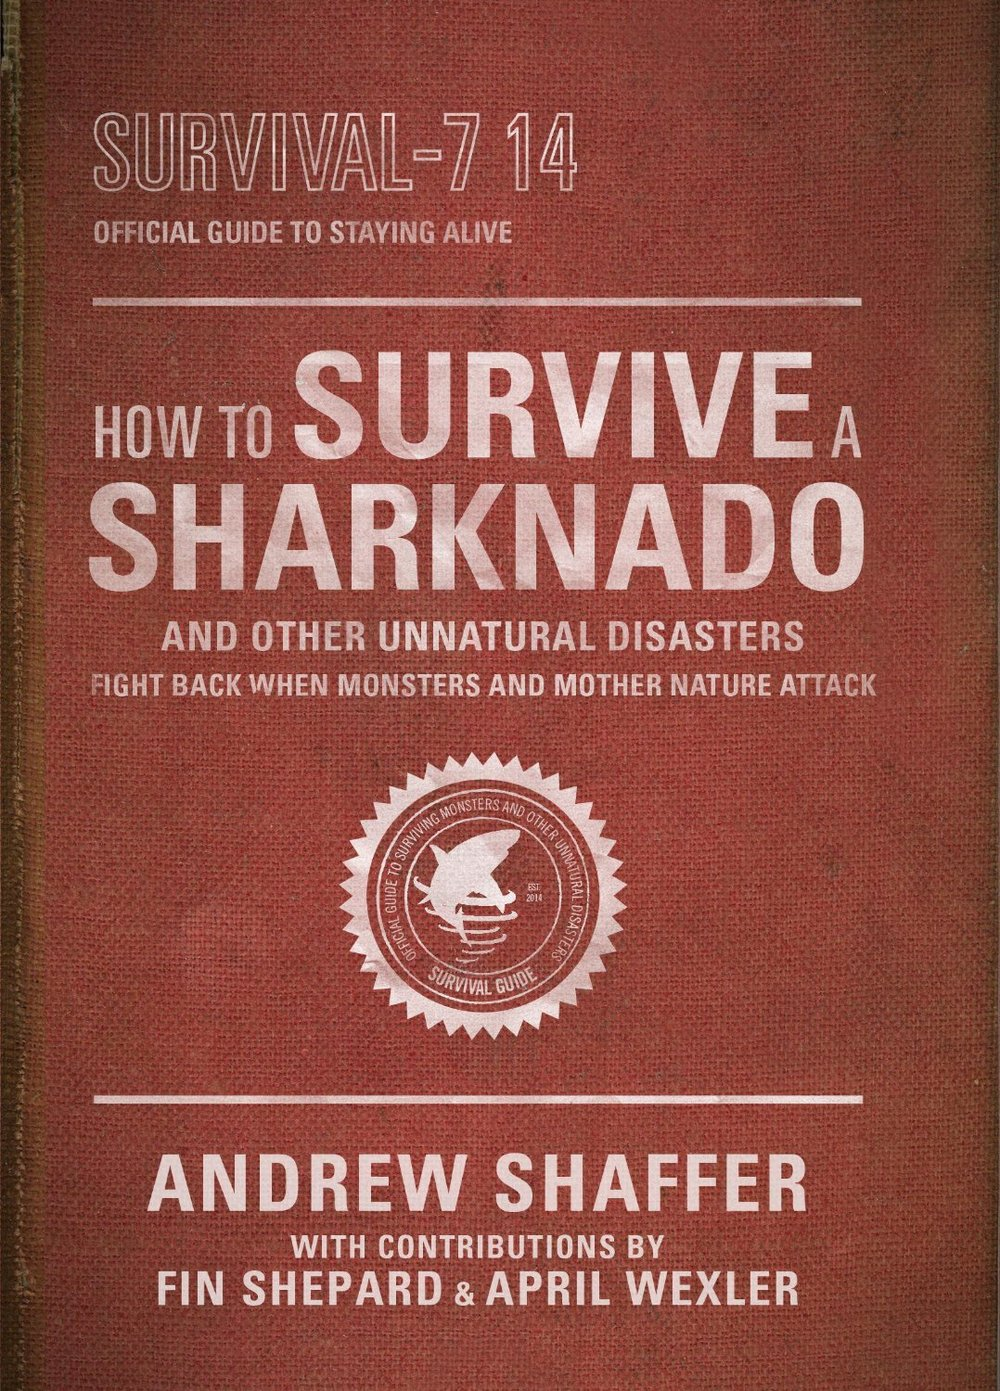 How to Survive a Sharknado and Other Unnatural Disasters is available now from Crown Publishing/Three Rivers Press and Syfy